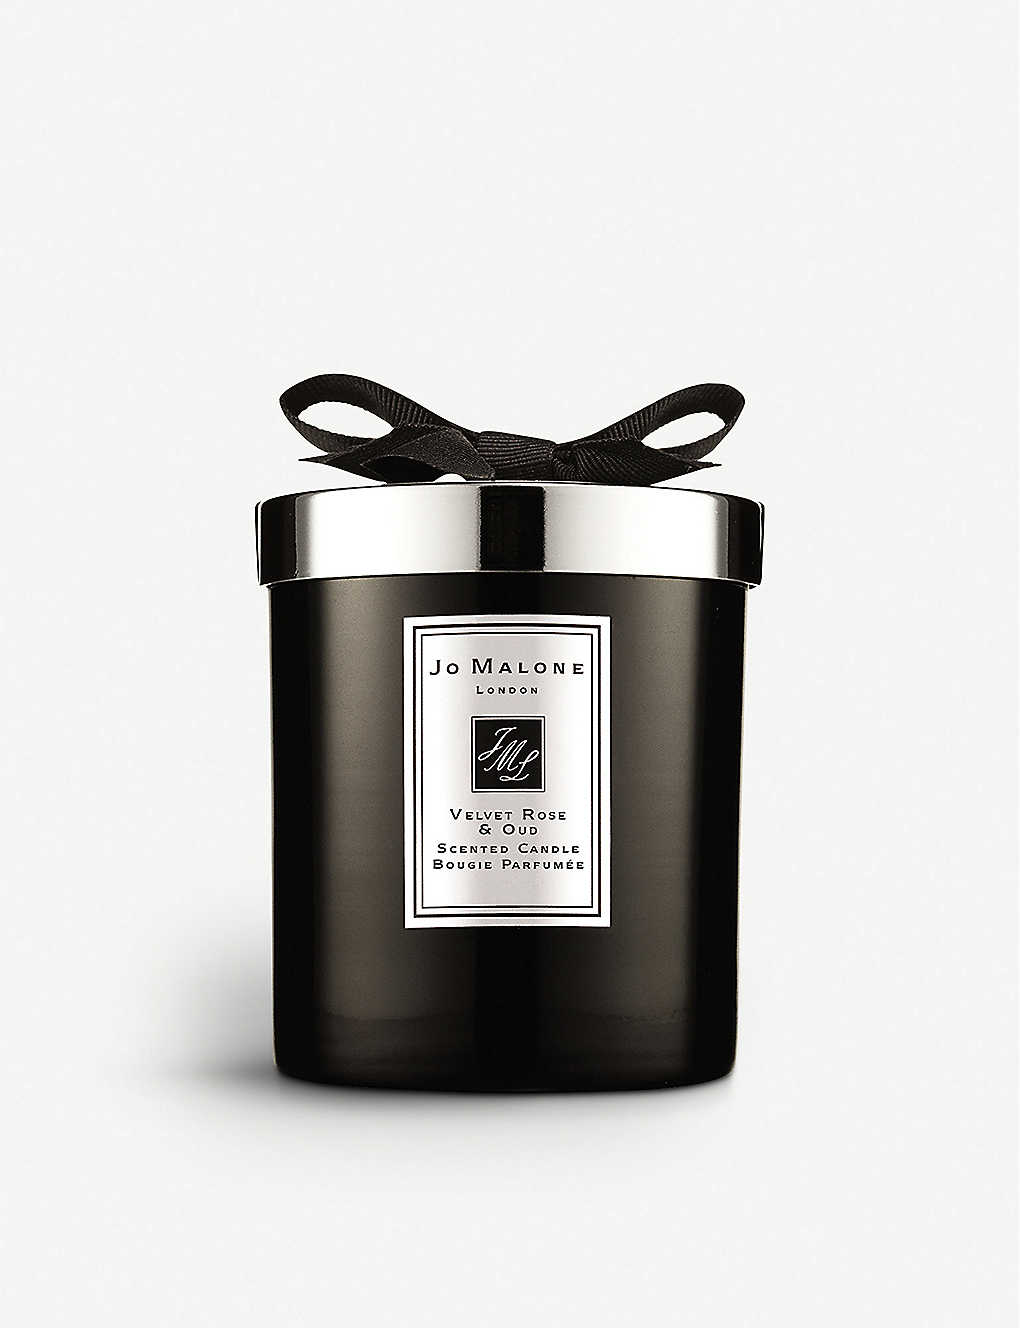 JO MALONE LONDON: Velvet Rose & Oud scented candle 200g